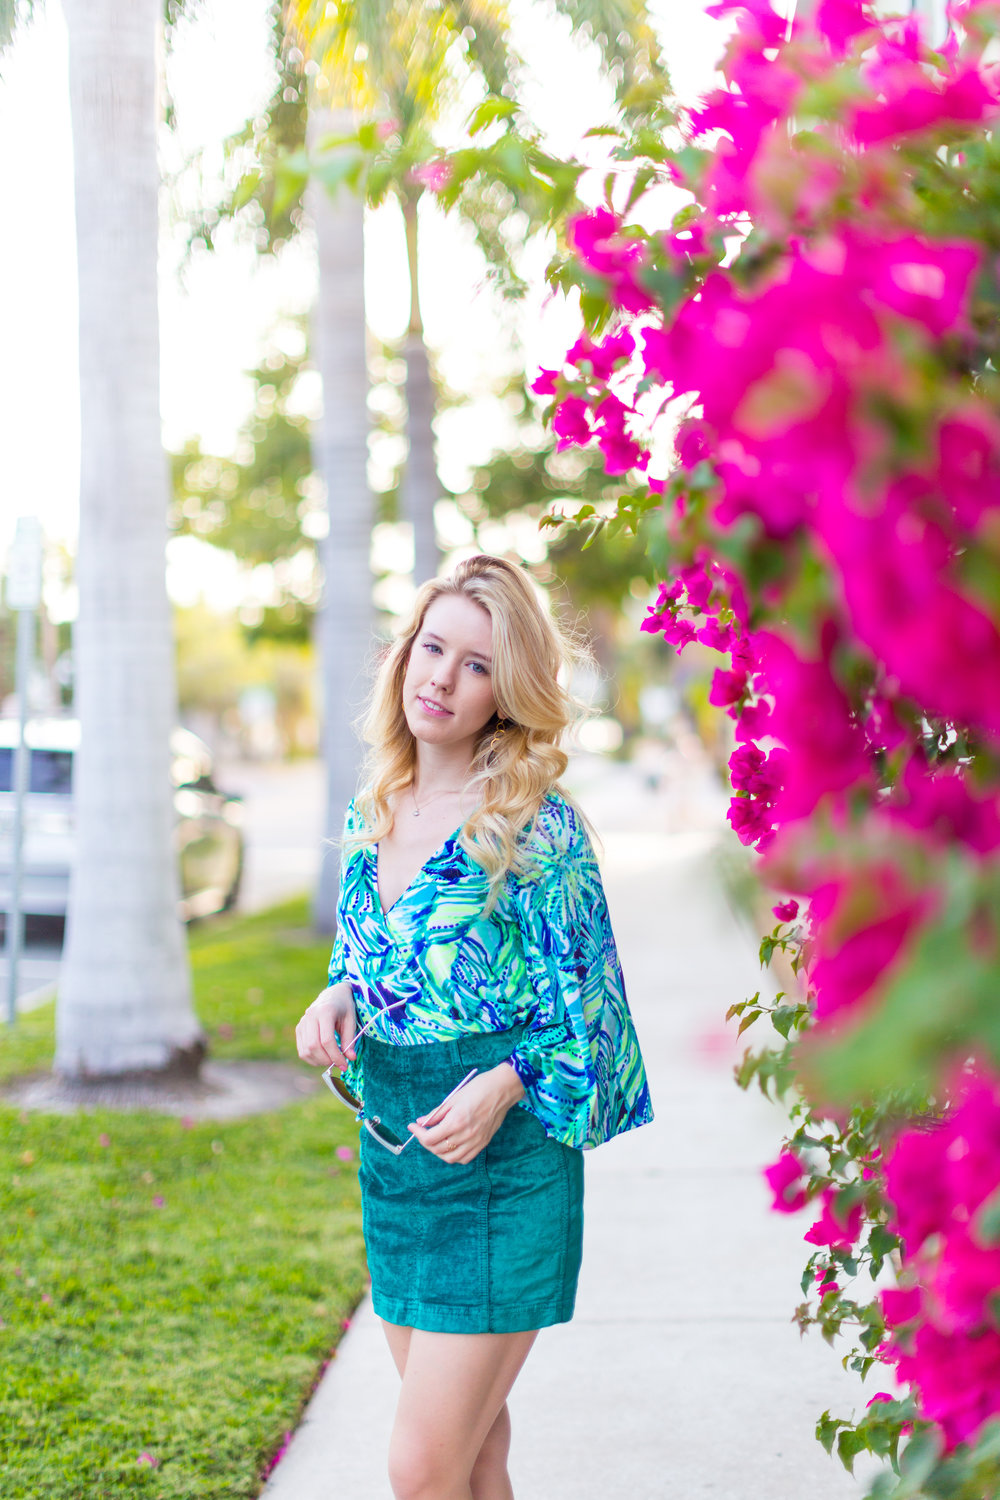 Preppy Fall Fashion Lilly Pulitzer Florida Green Skirt-2.jpg